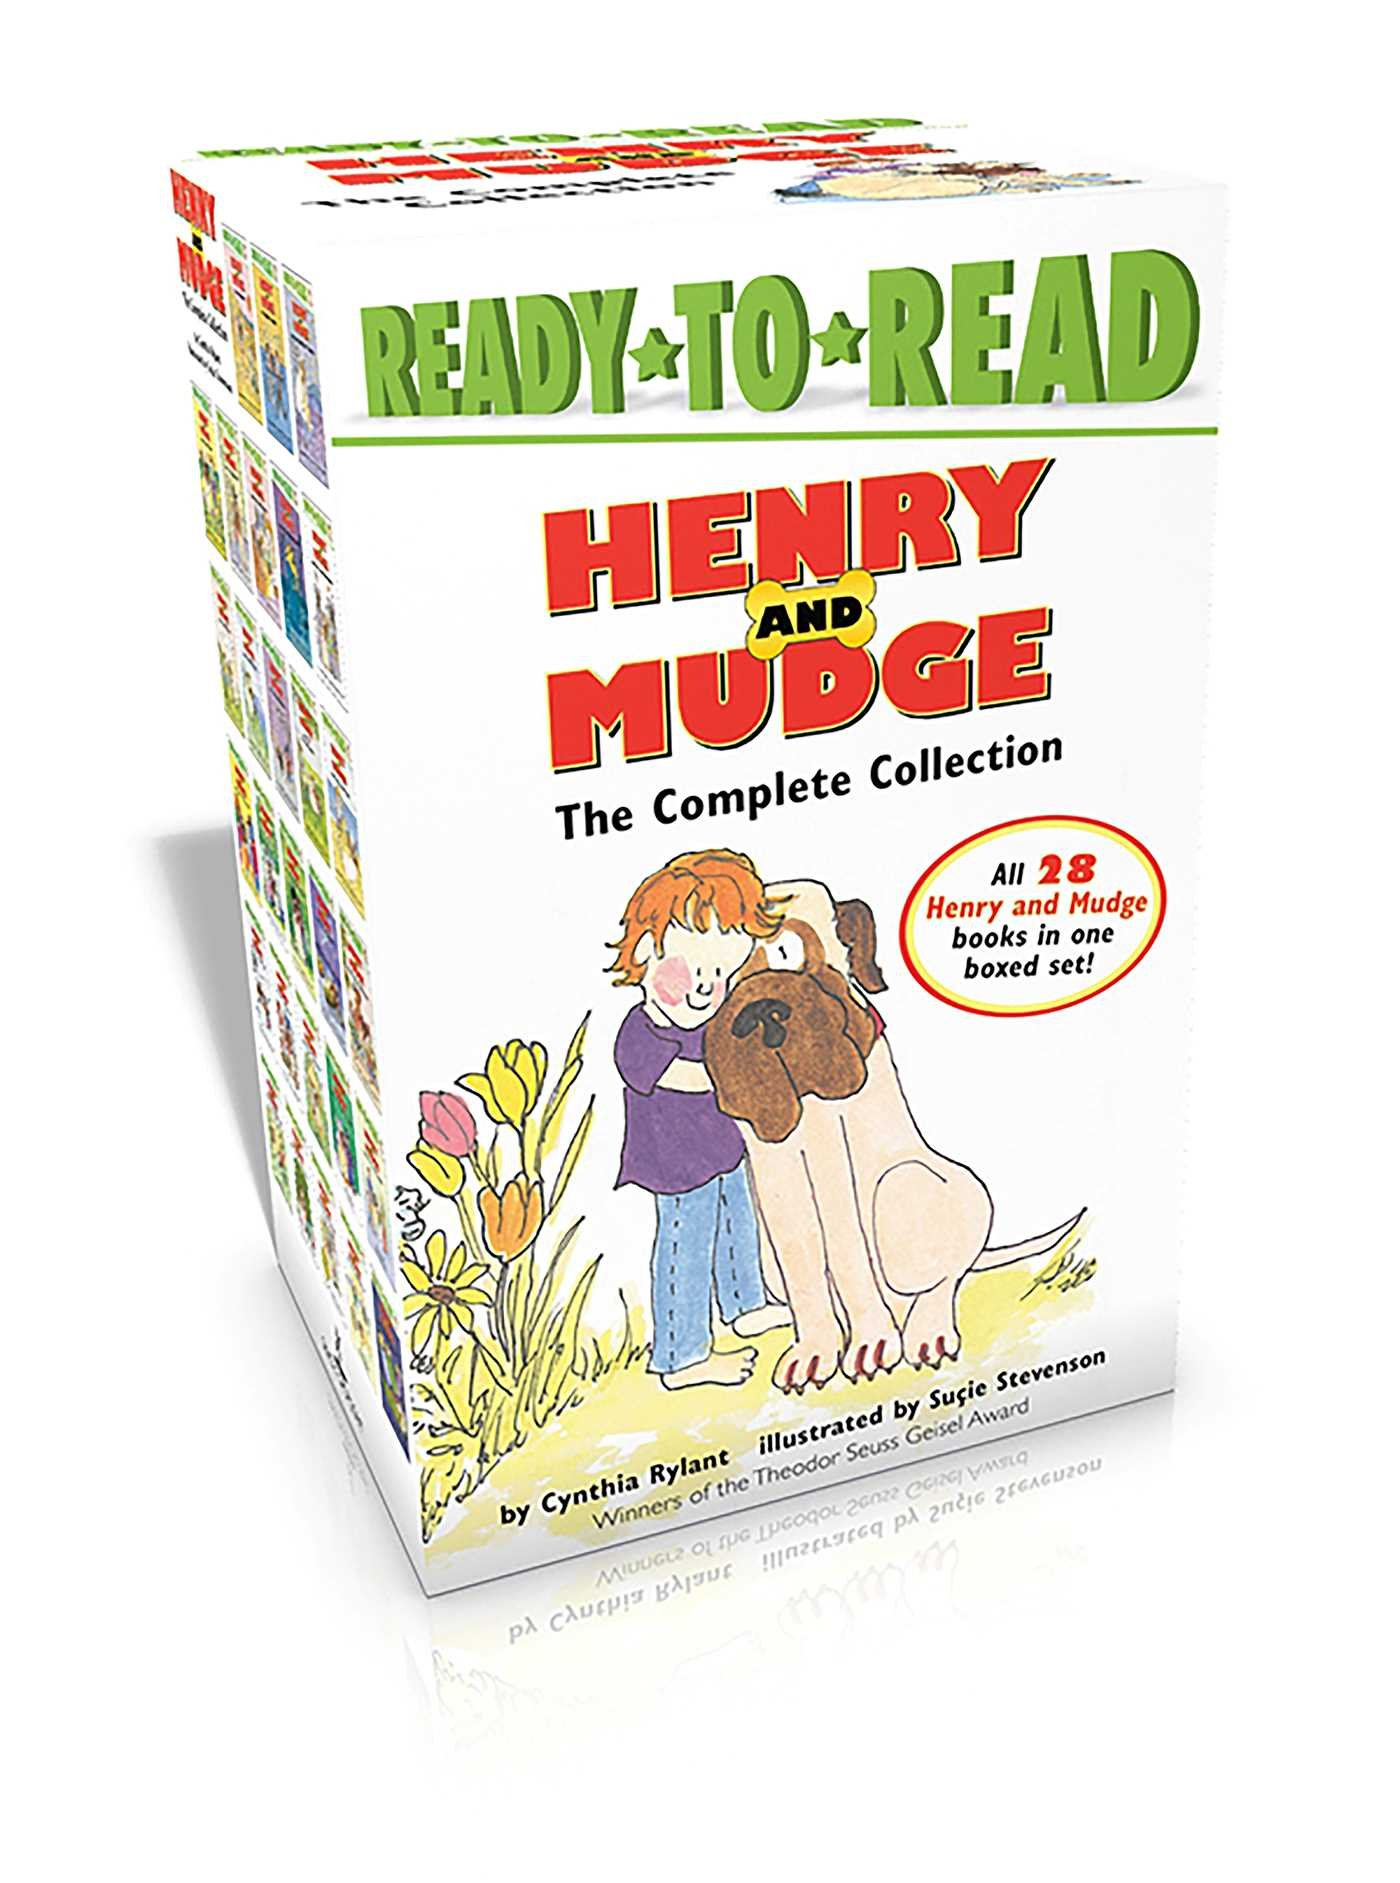 Amazon.com: Henry and Mudge The Complete Collection: Henry and Mudge; Henry  and Mudge in Puddle Trouble; Henry and Mudge and the Bedtime Thumps; ...